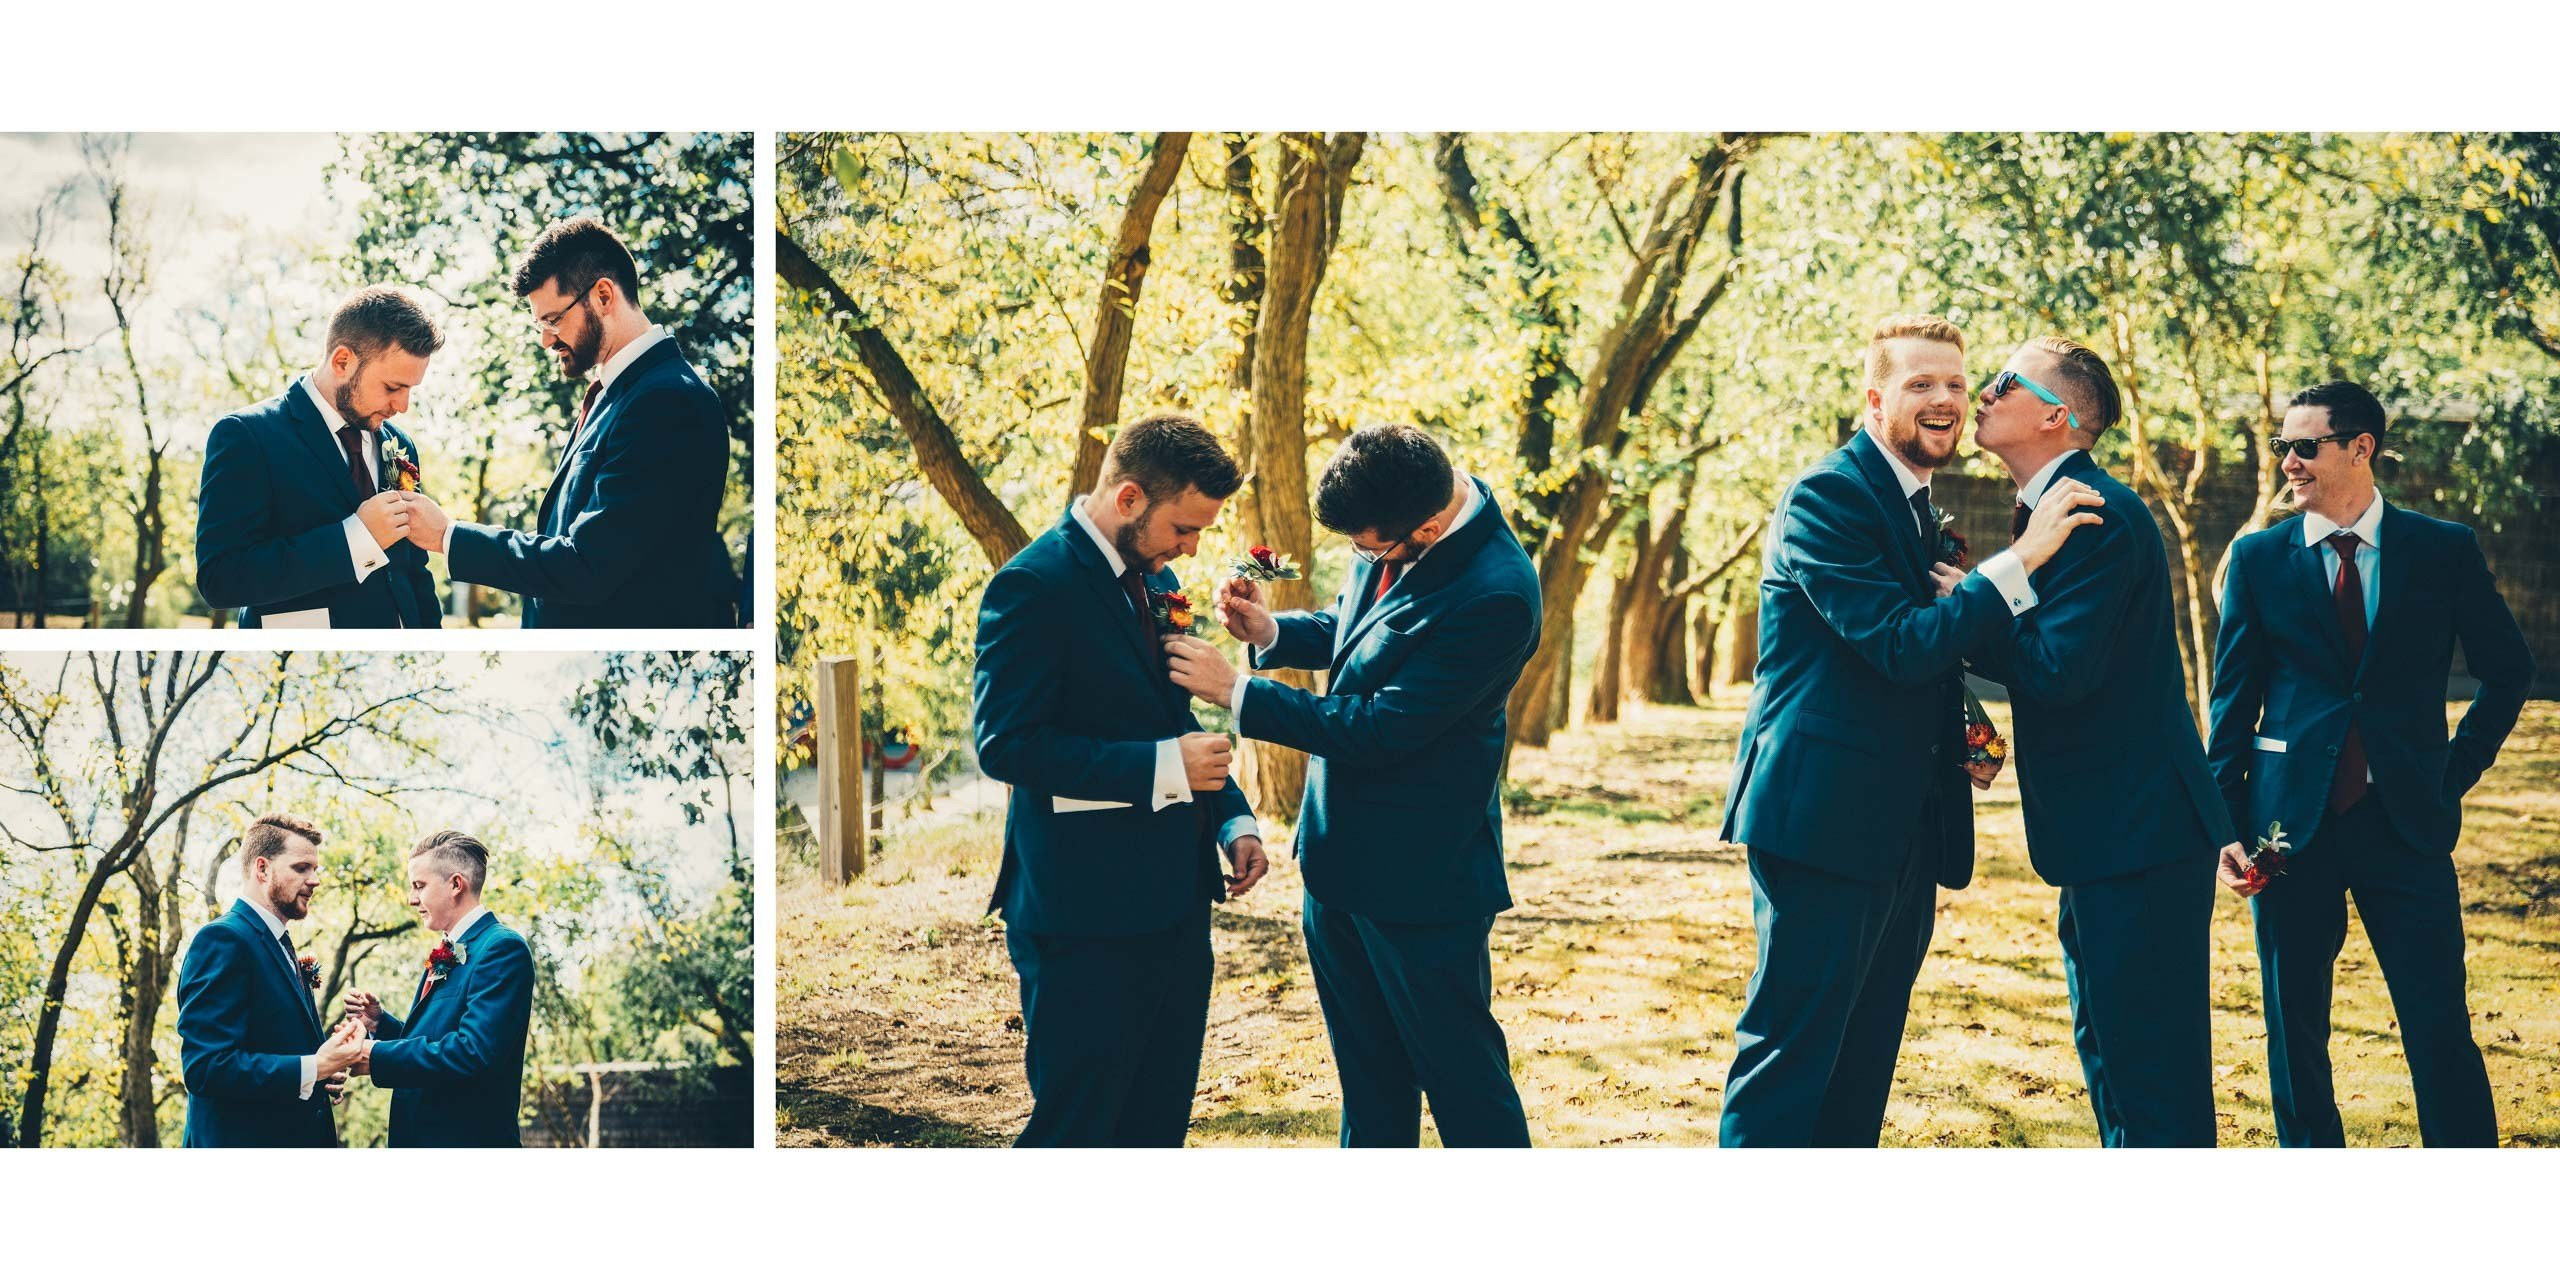 Wedding photo melbourne australia Blessed Vision Photography